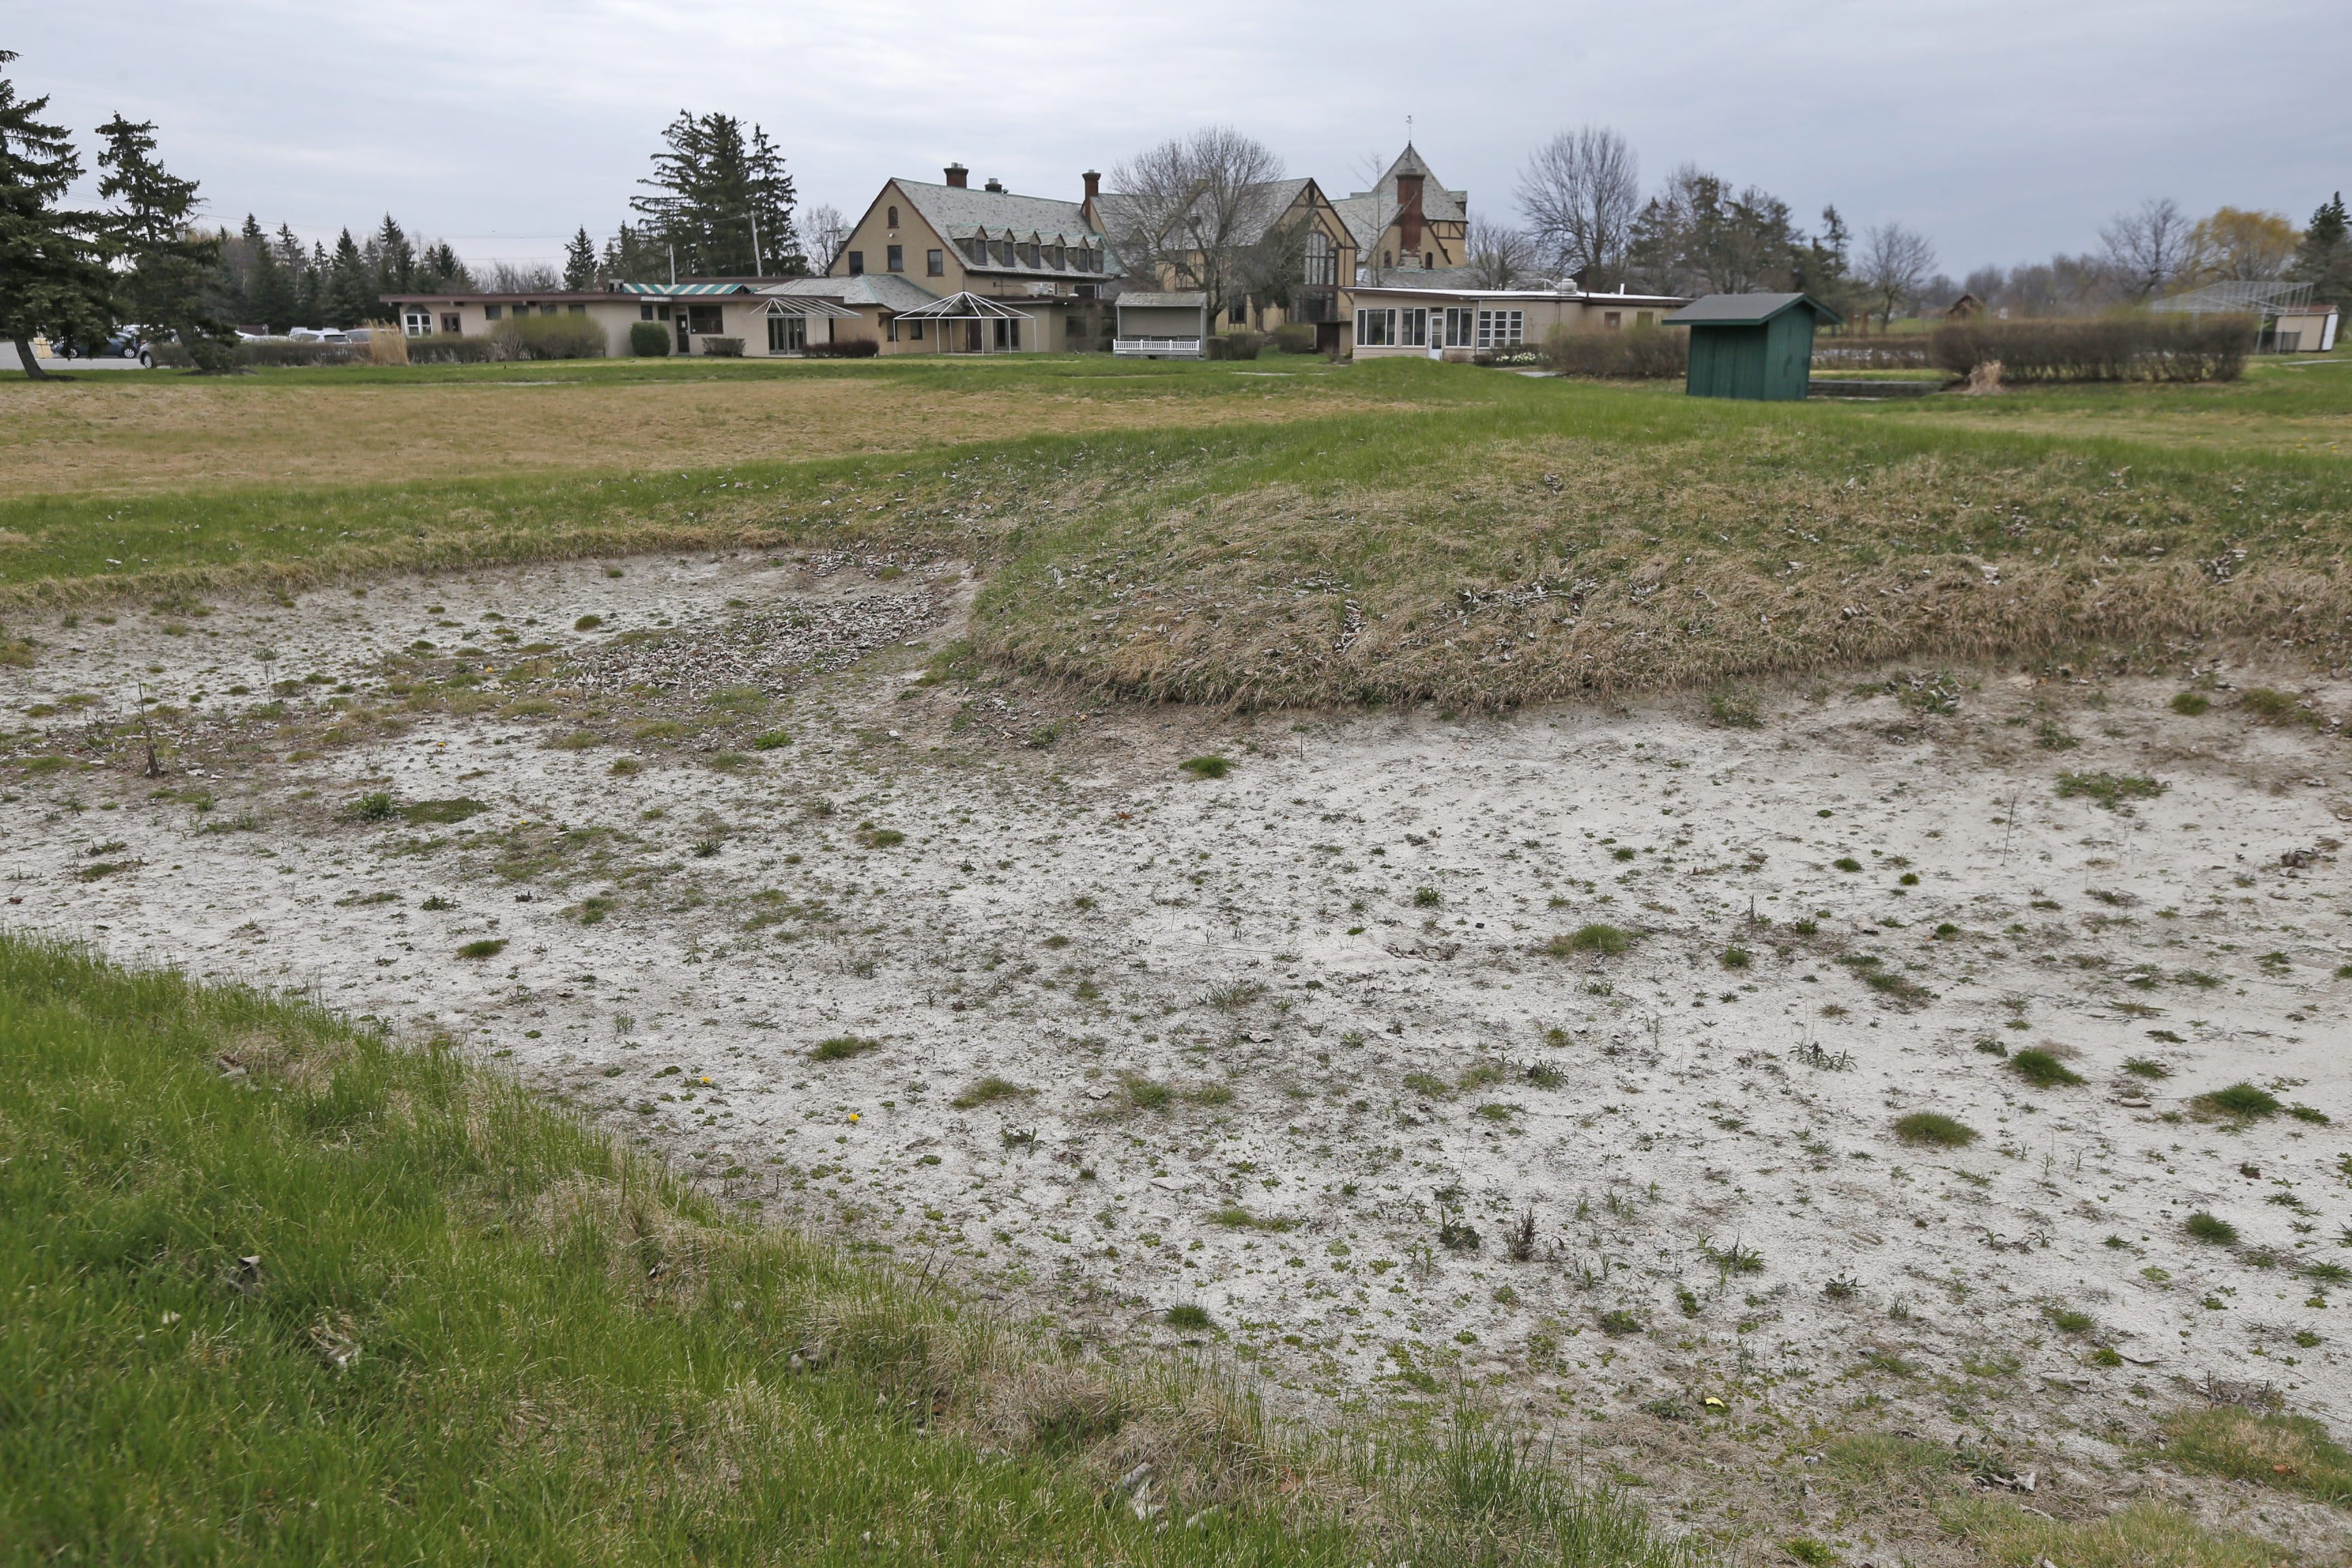 A long-forgotten sand trap on one of the holes  on the grounds at the old Westwood Country Club in Amherst on Thursday, April 21, 2016. Nearby residents have been opposed to a plan to develop the land of the former country club and golf course.  (Robert Kirkham/Buffalo News)